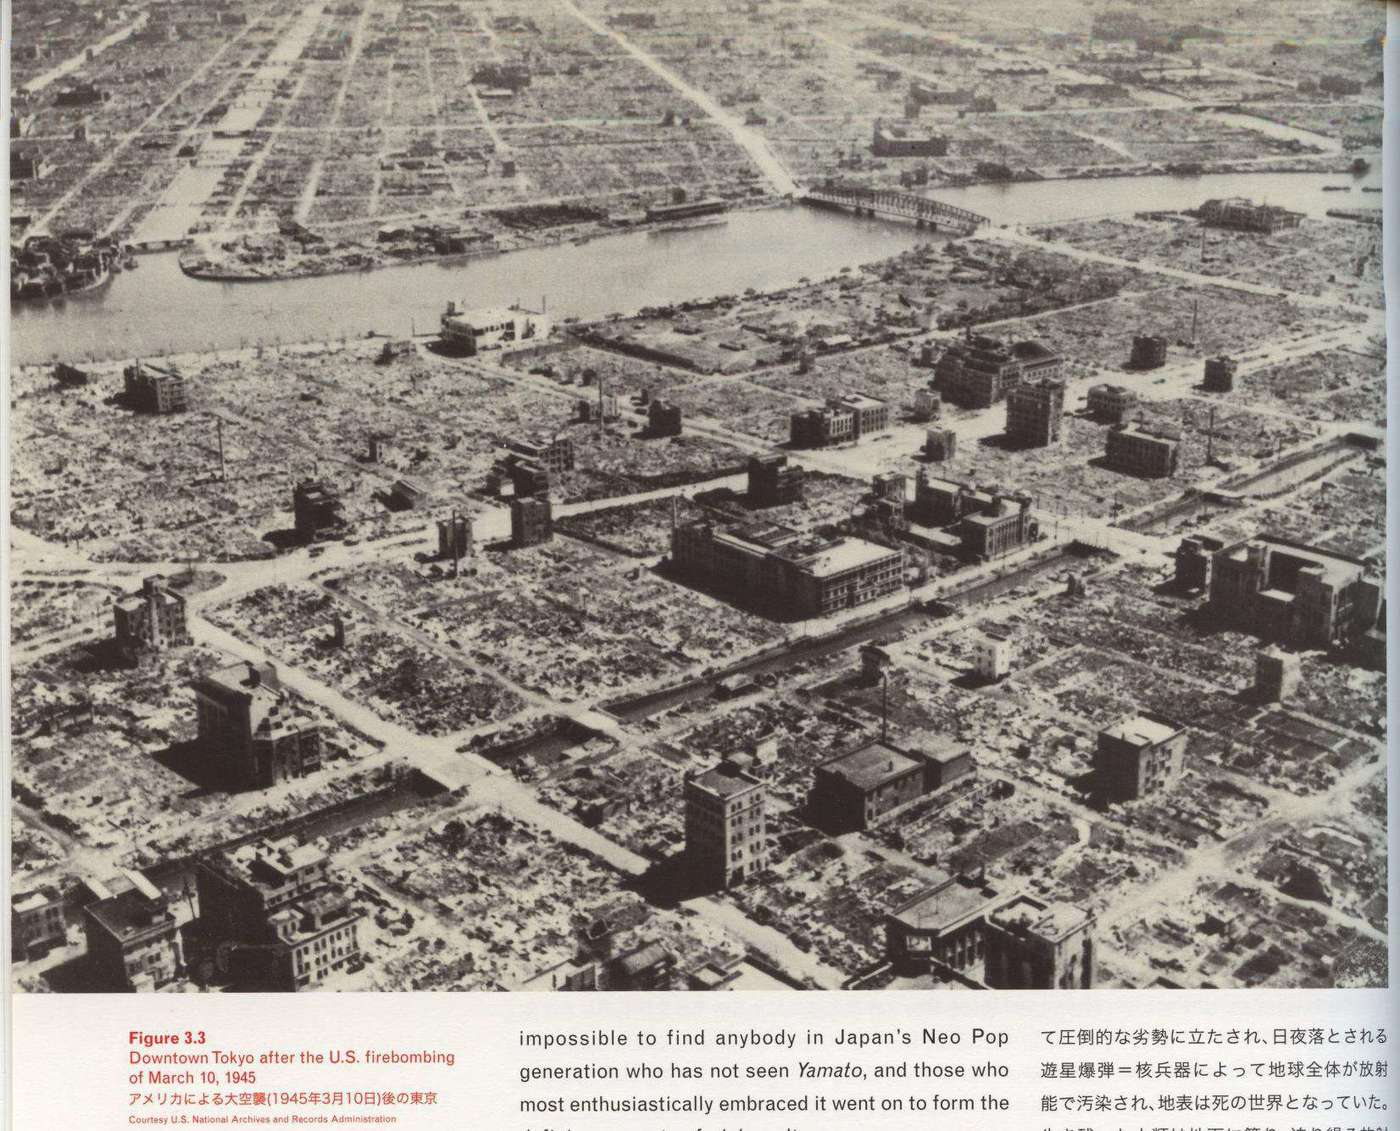 Caption left top: Downtown Tokyo after the U.S. firebombing of March 10, 1945